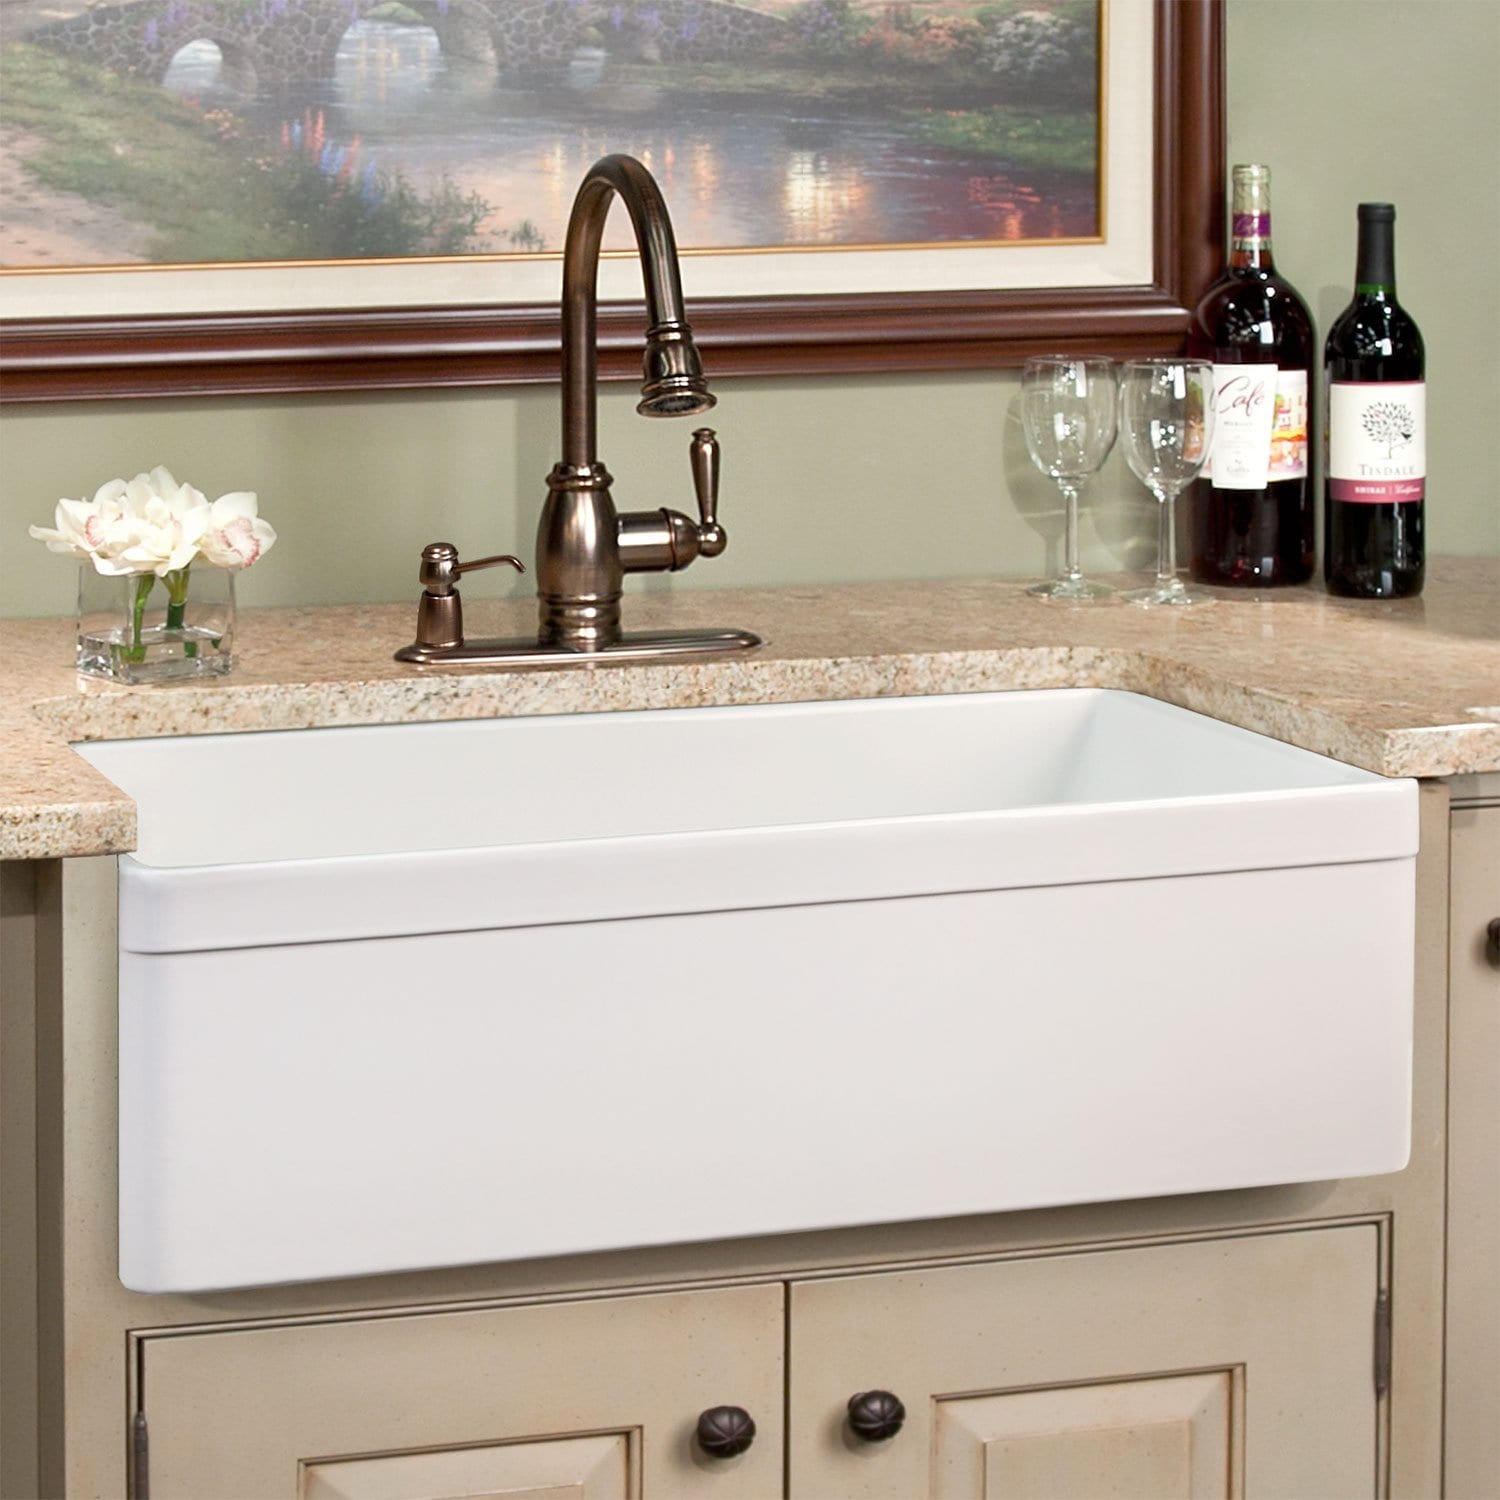 Farmhouse Single Bowl Kitchen Sink